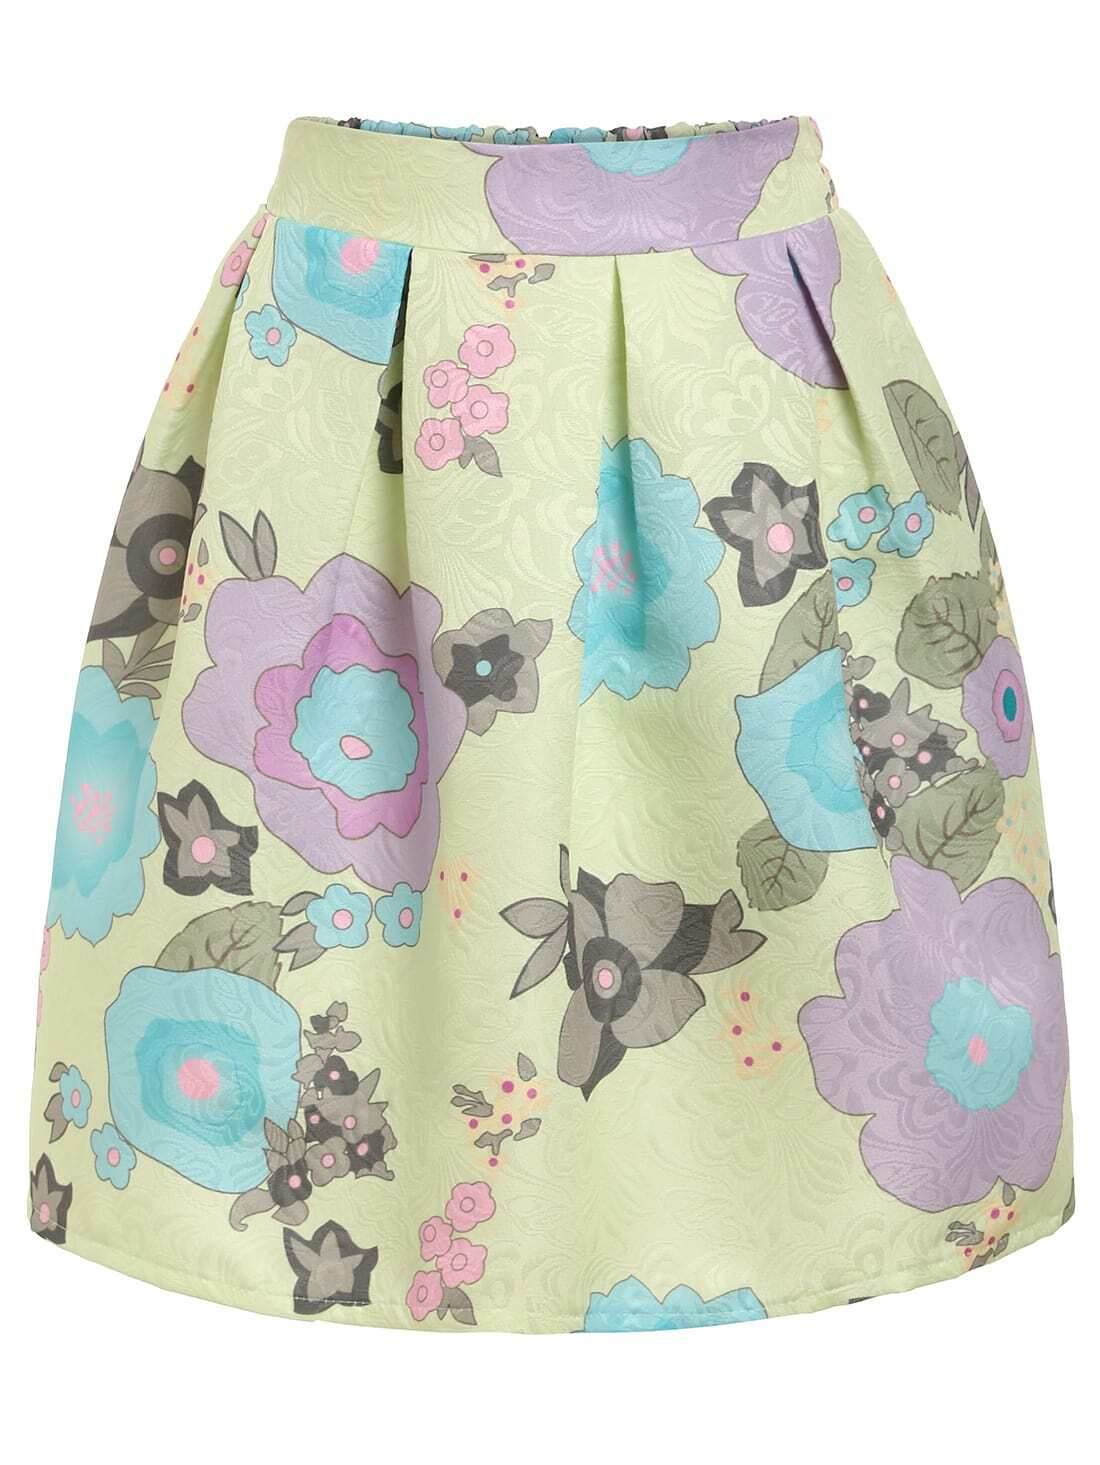 Bloom Print Box Pleat Skirt - Green